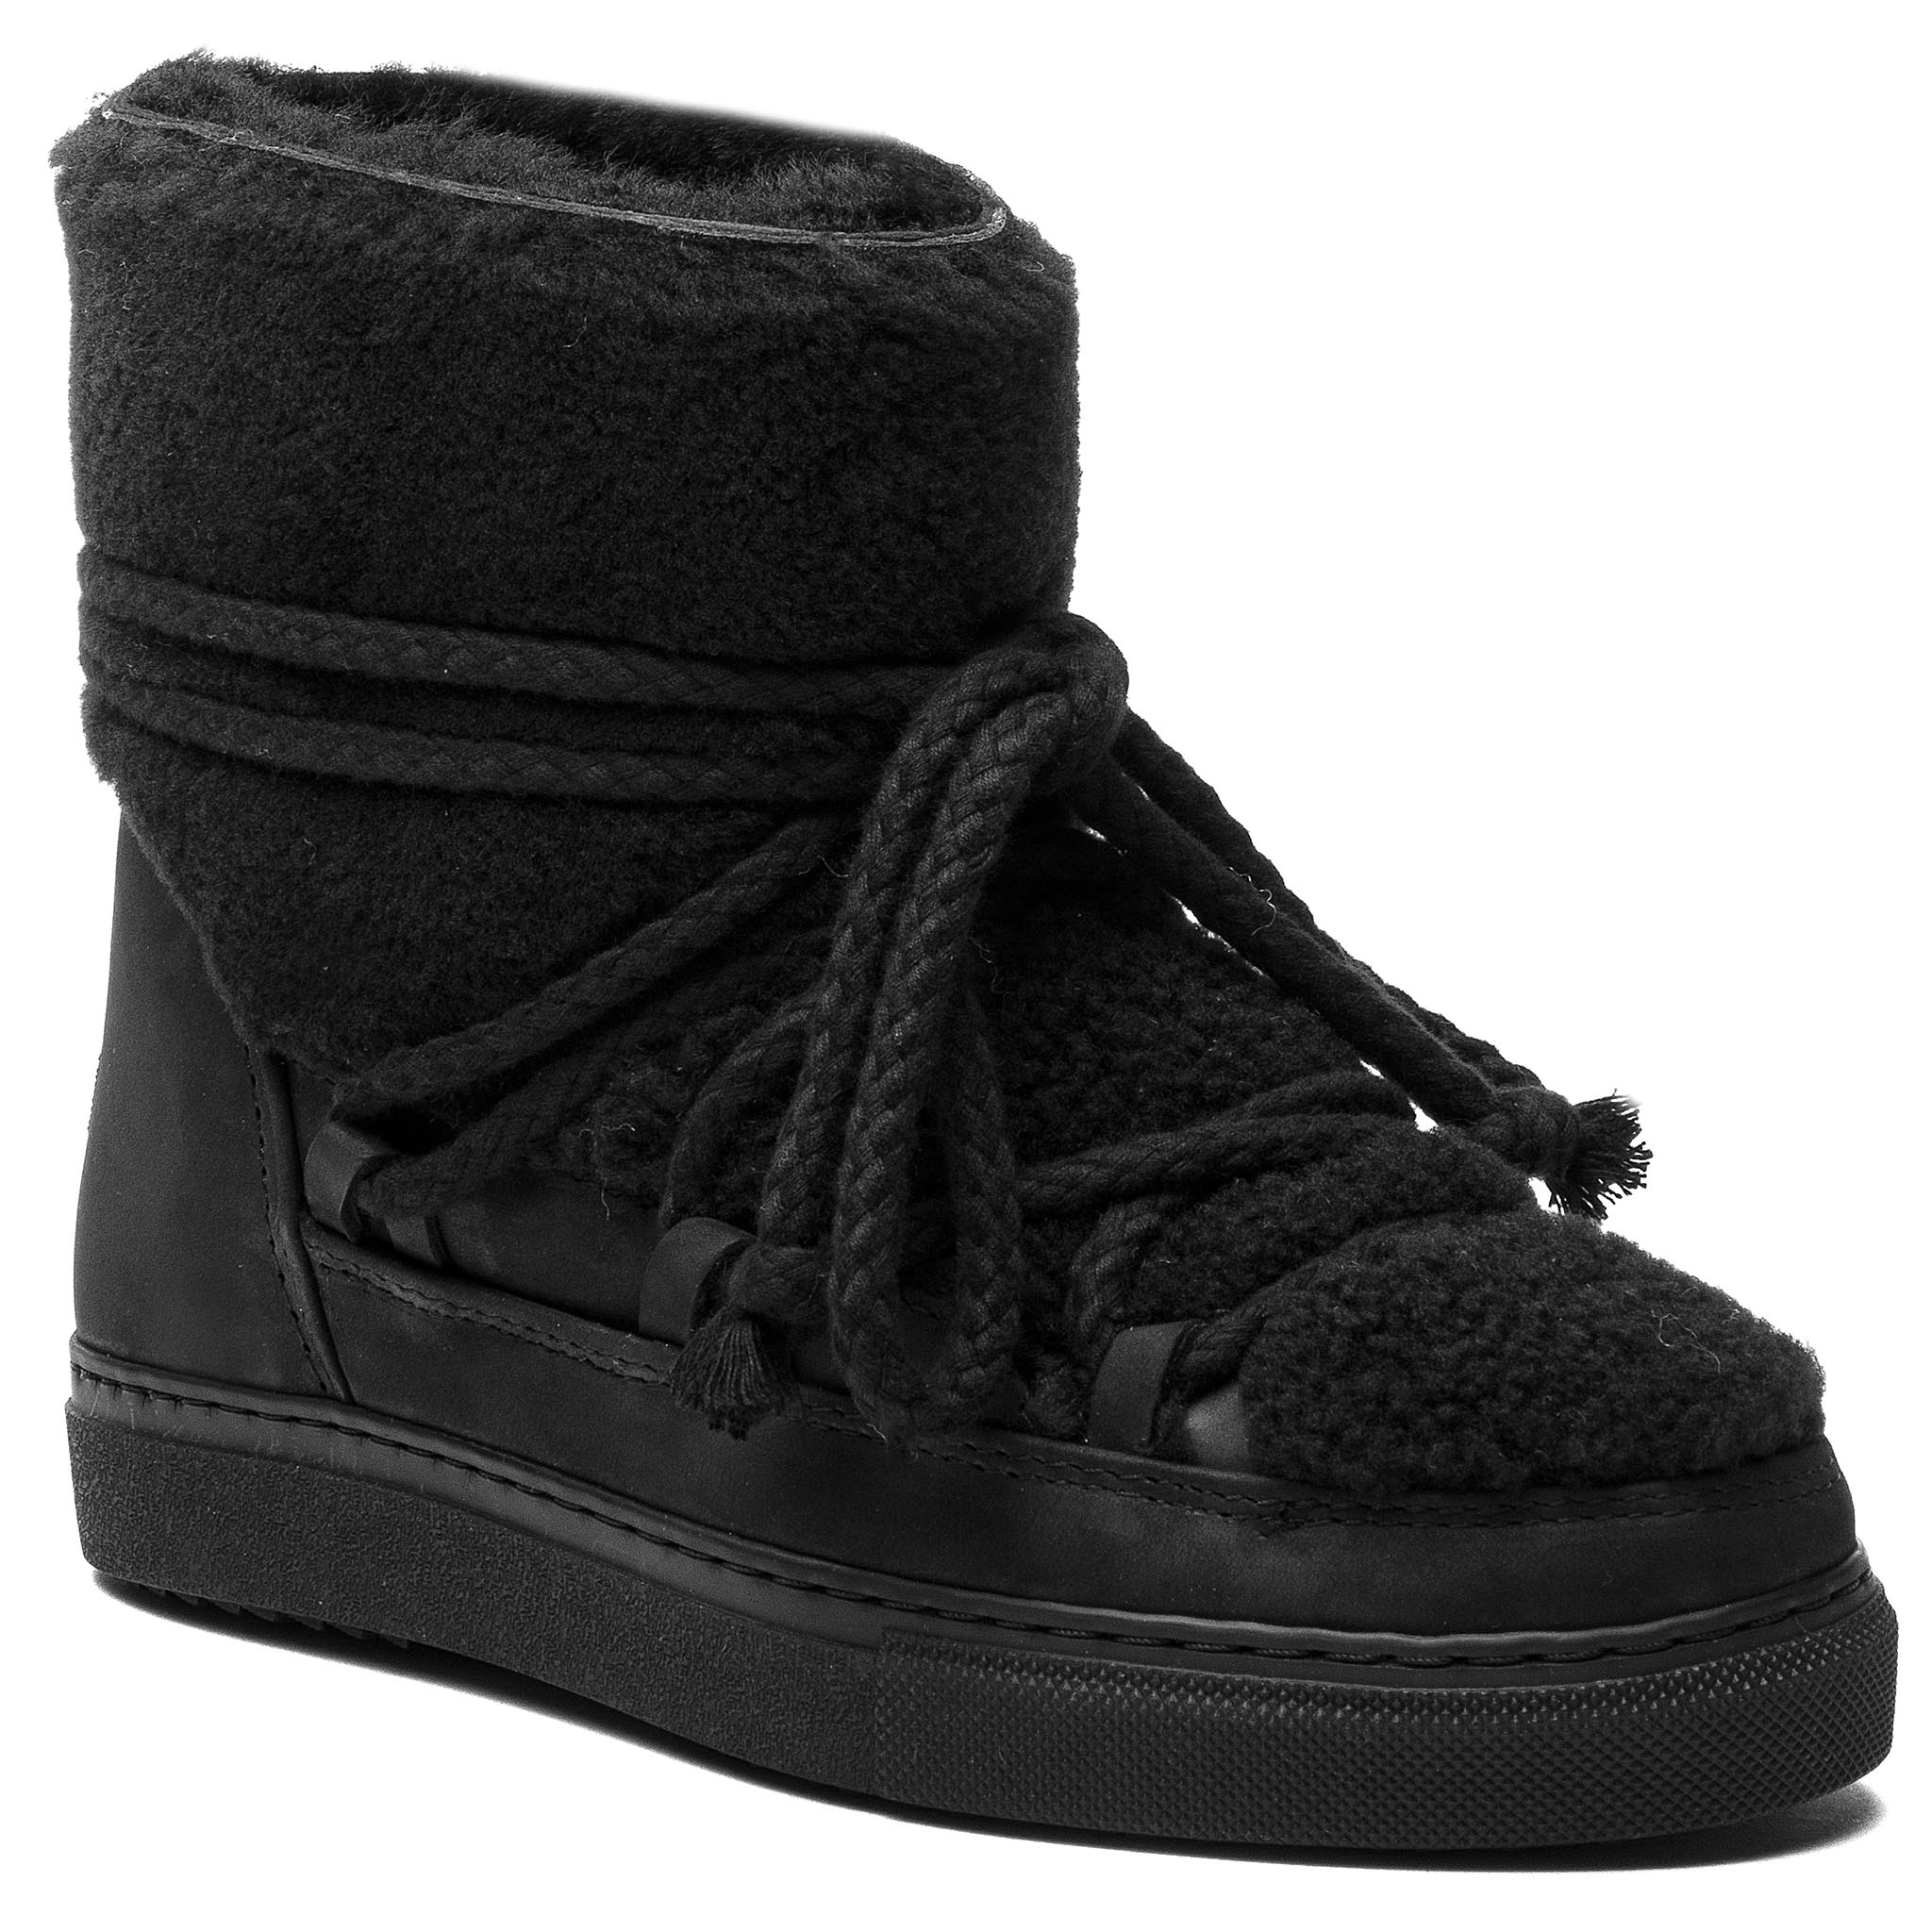 Chaussures INUIKII - Sneaker Curly 70202-16 Black-Blk Cot. Laces